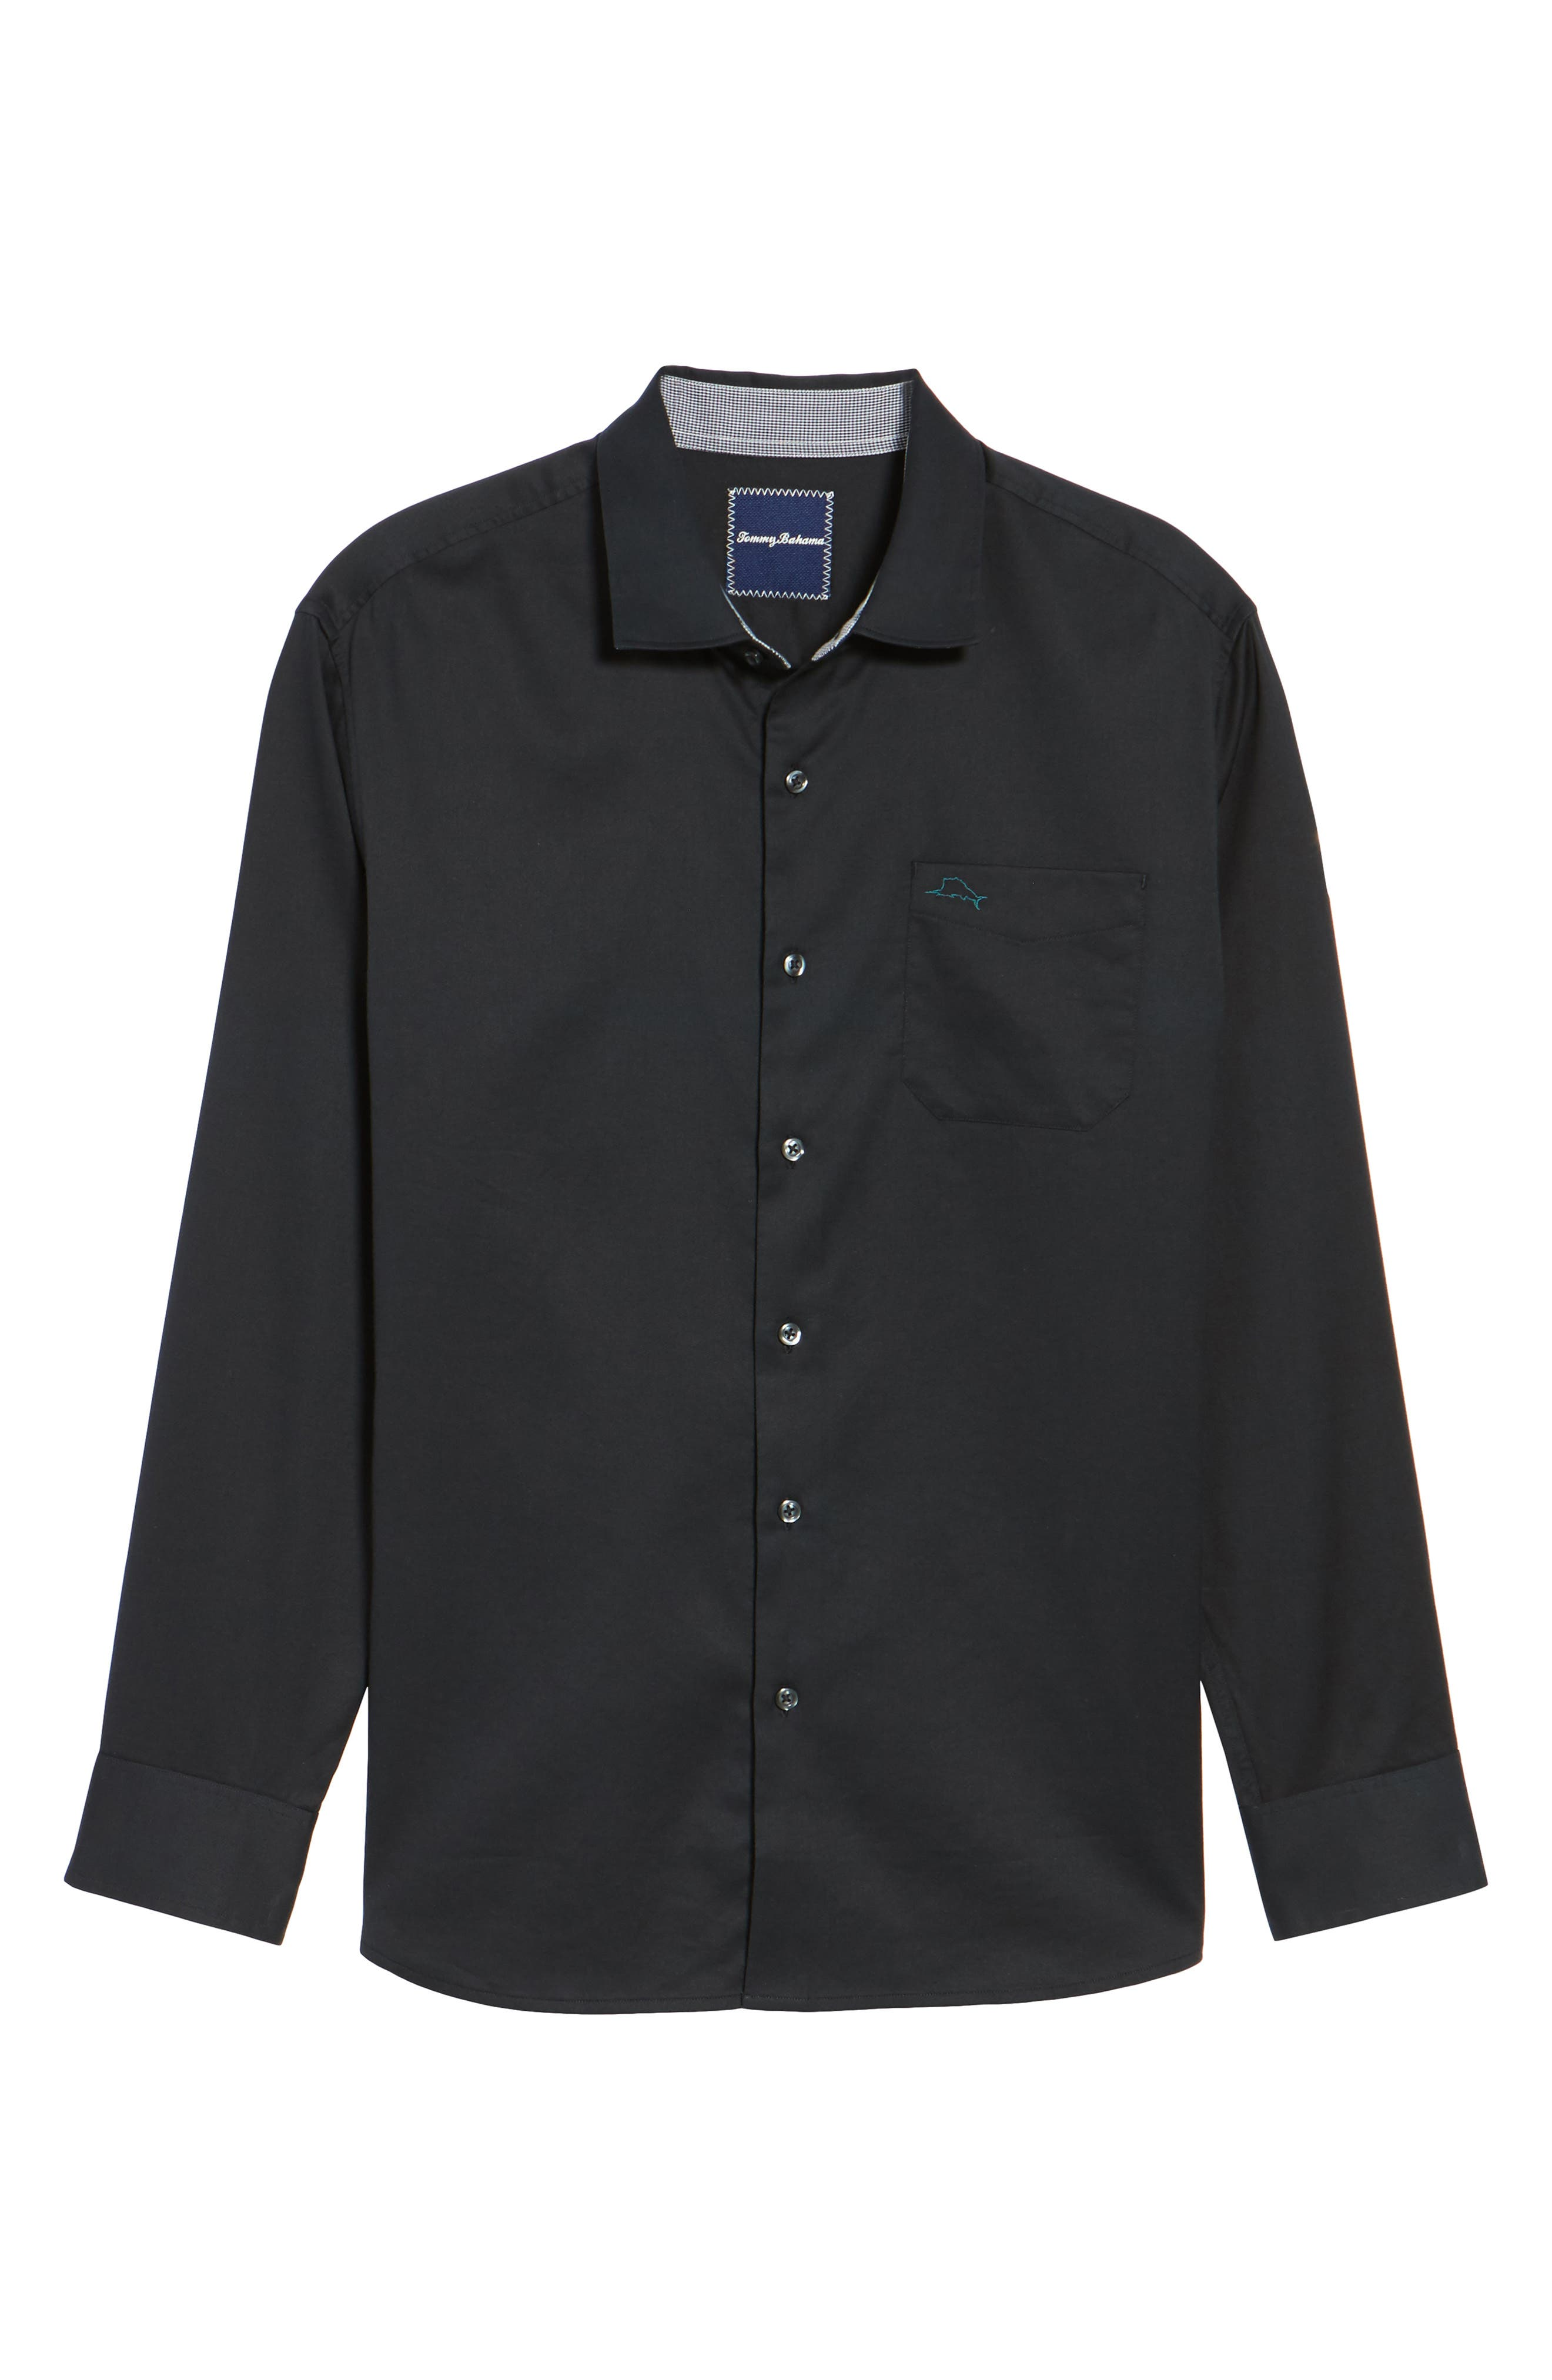 TOMMY BAHAMA,                             Oasis Twill Sport Shirt,                             Alternate thumbnail 6, color,                             001